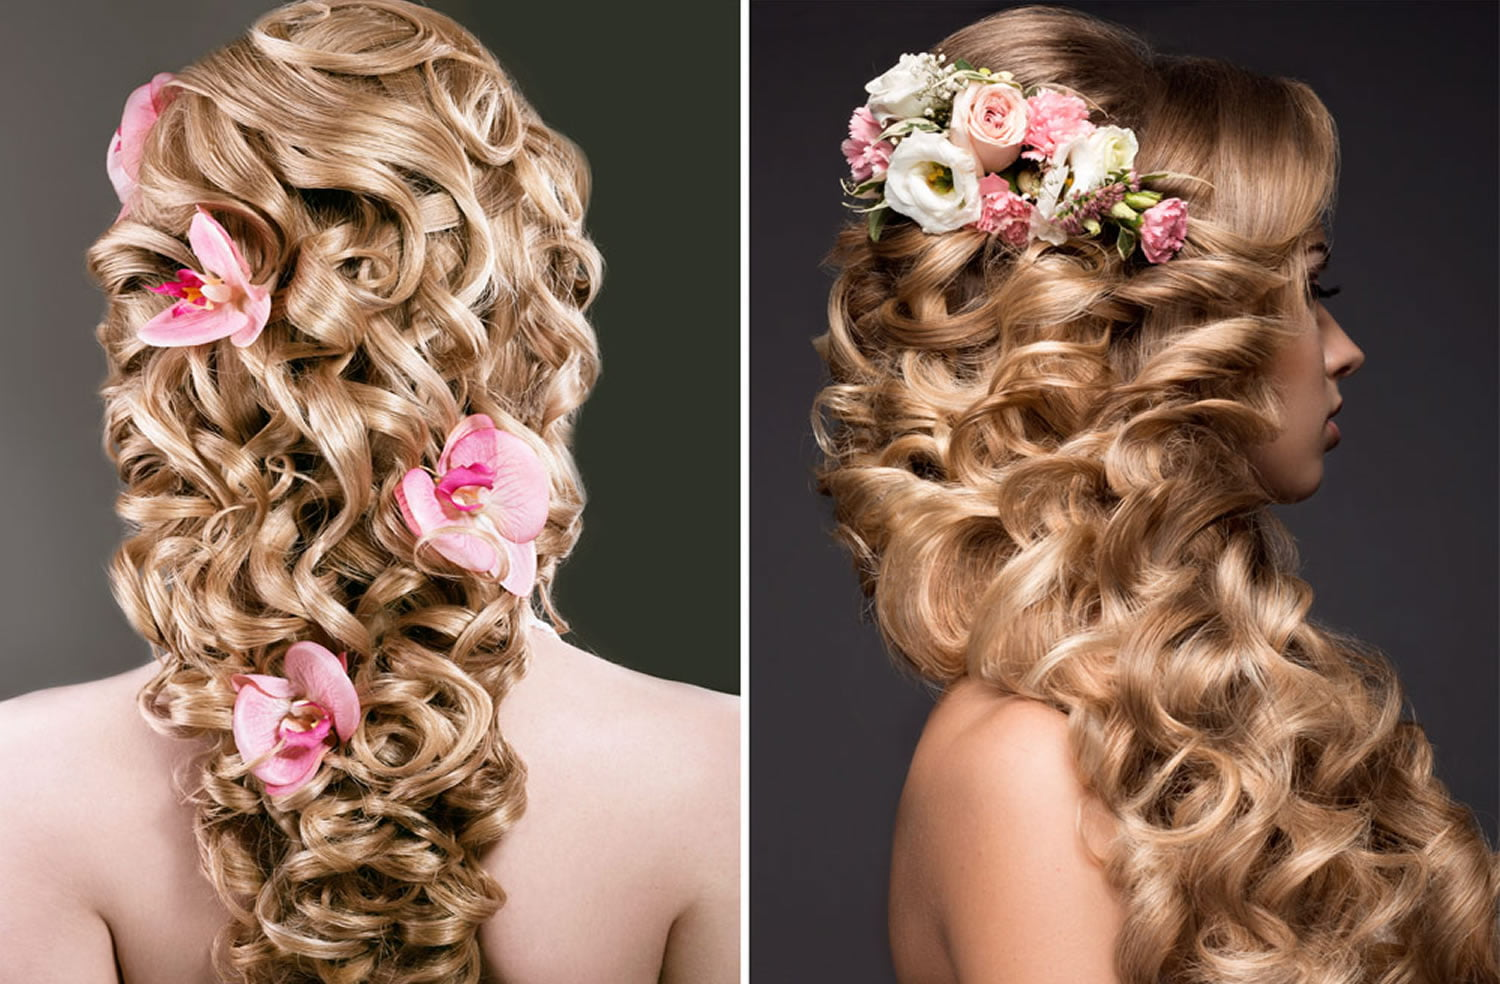 20 Gorgeous Wedding Hairstyles For Long Hair: Very Stylish Wedding Hairstyles For Long Hair 2018-2019